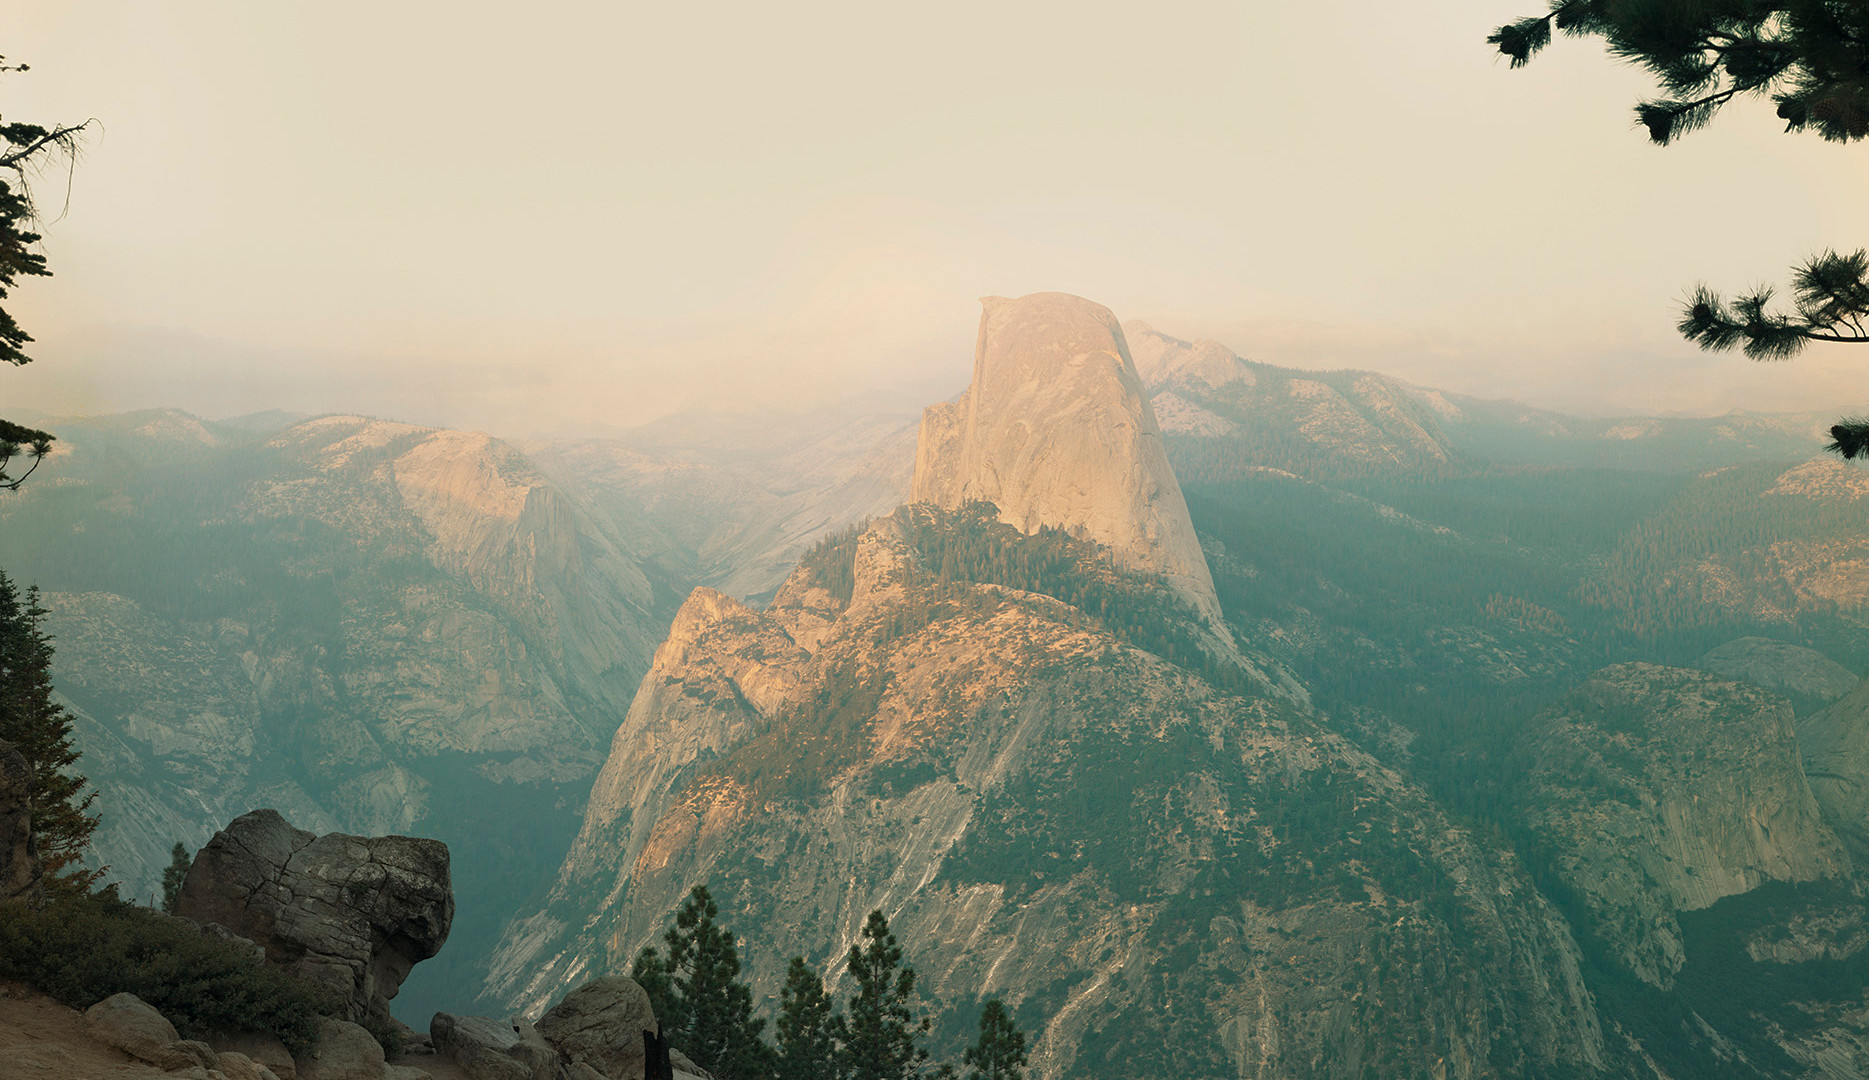 Richard Misrach, Yosemite in smog, 1988